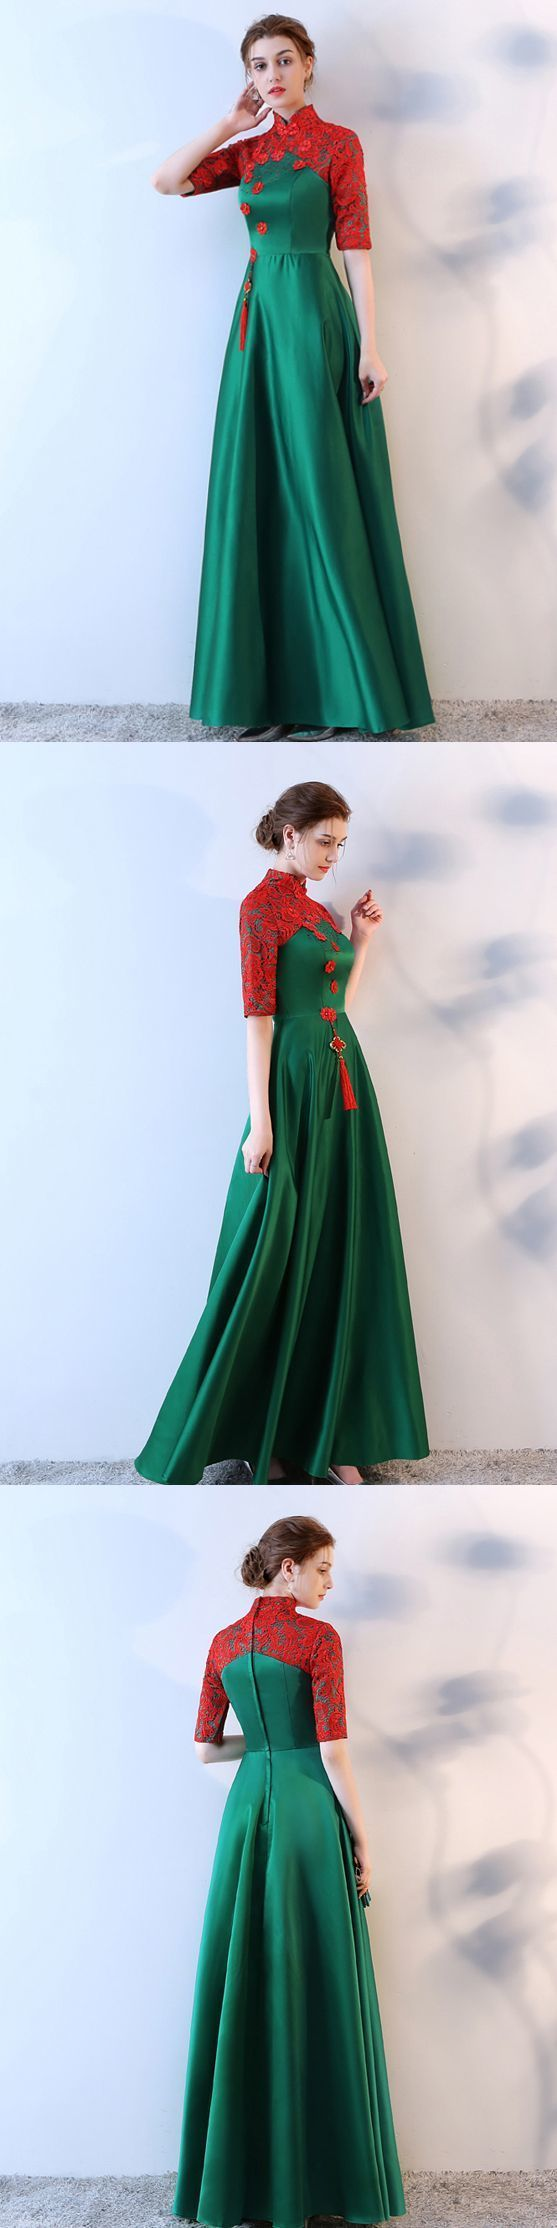 Simple Prom Dresses,New Prom Gown,Vintage by prom dresses on Zibbet